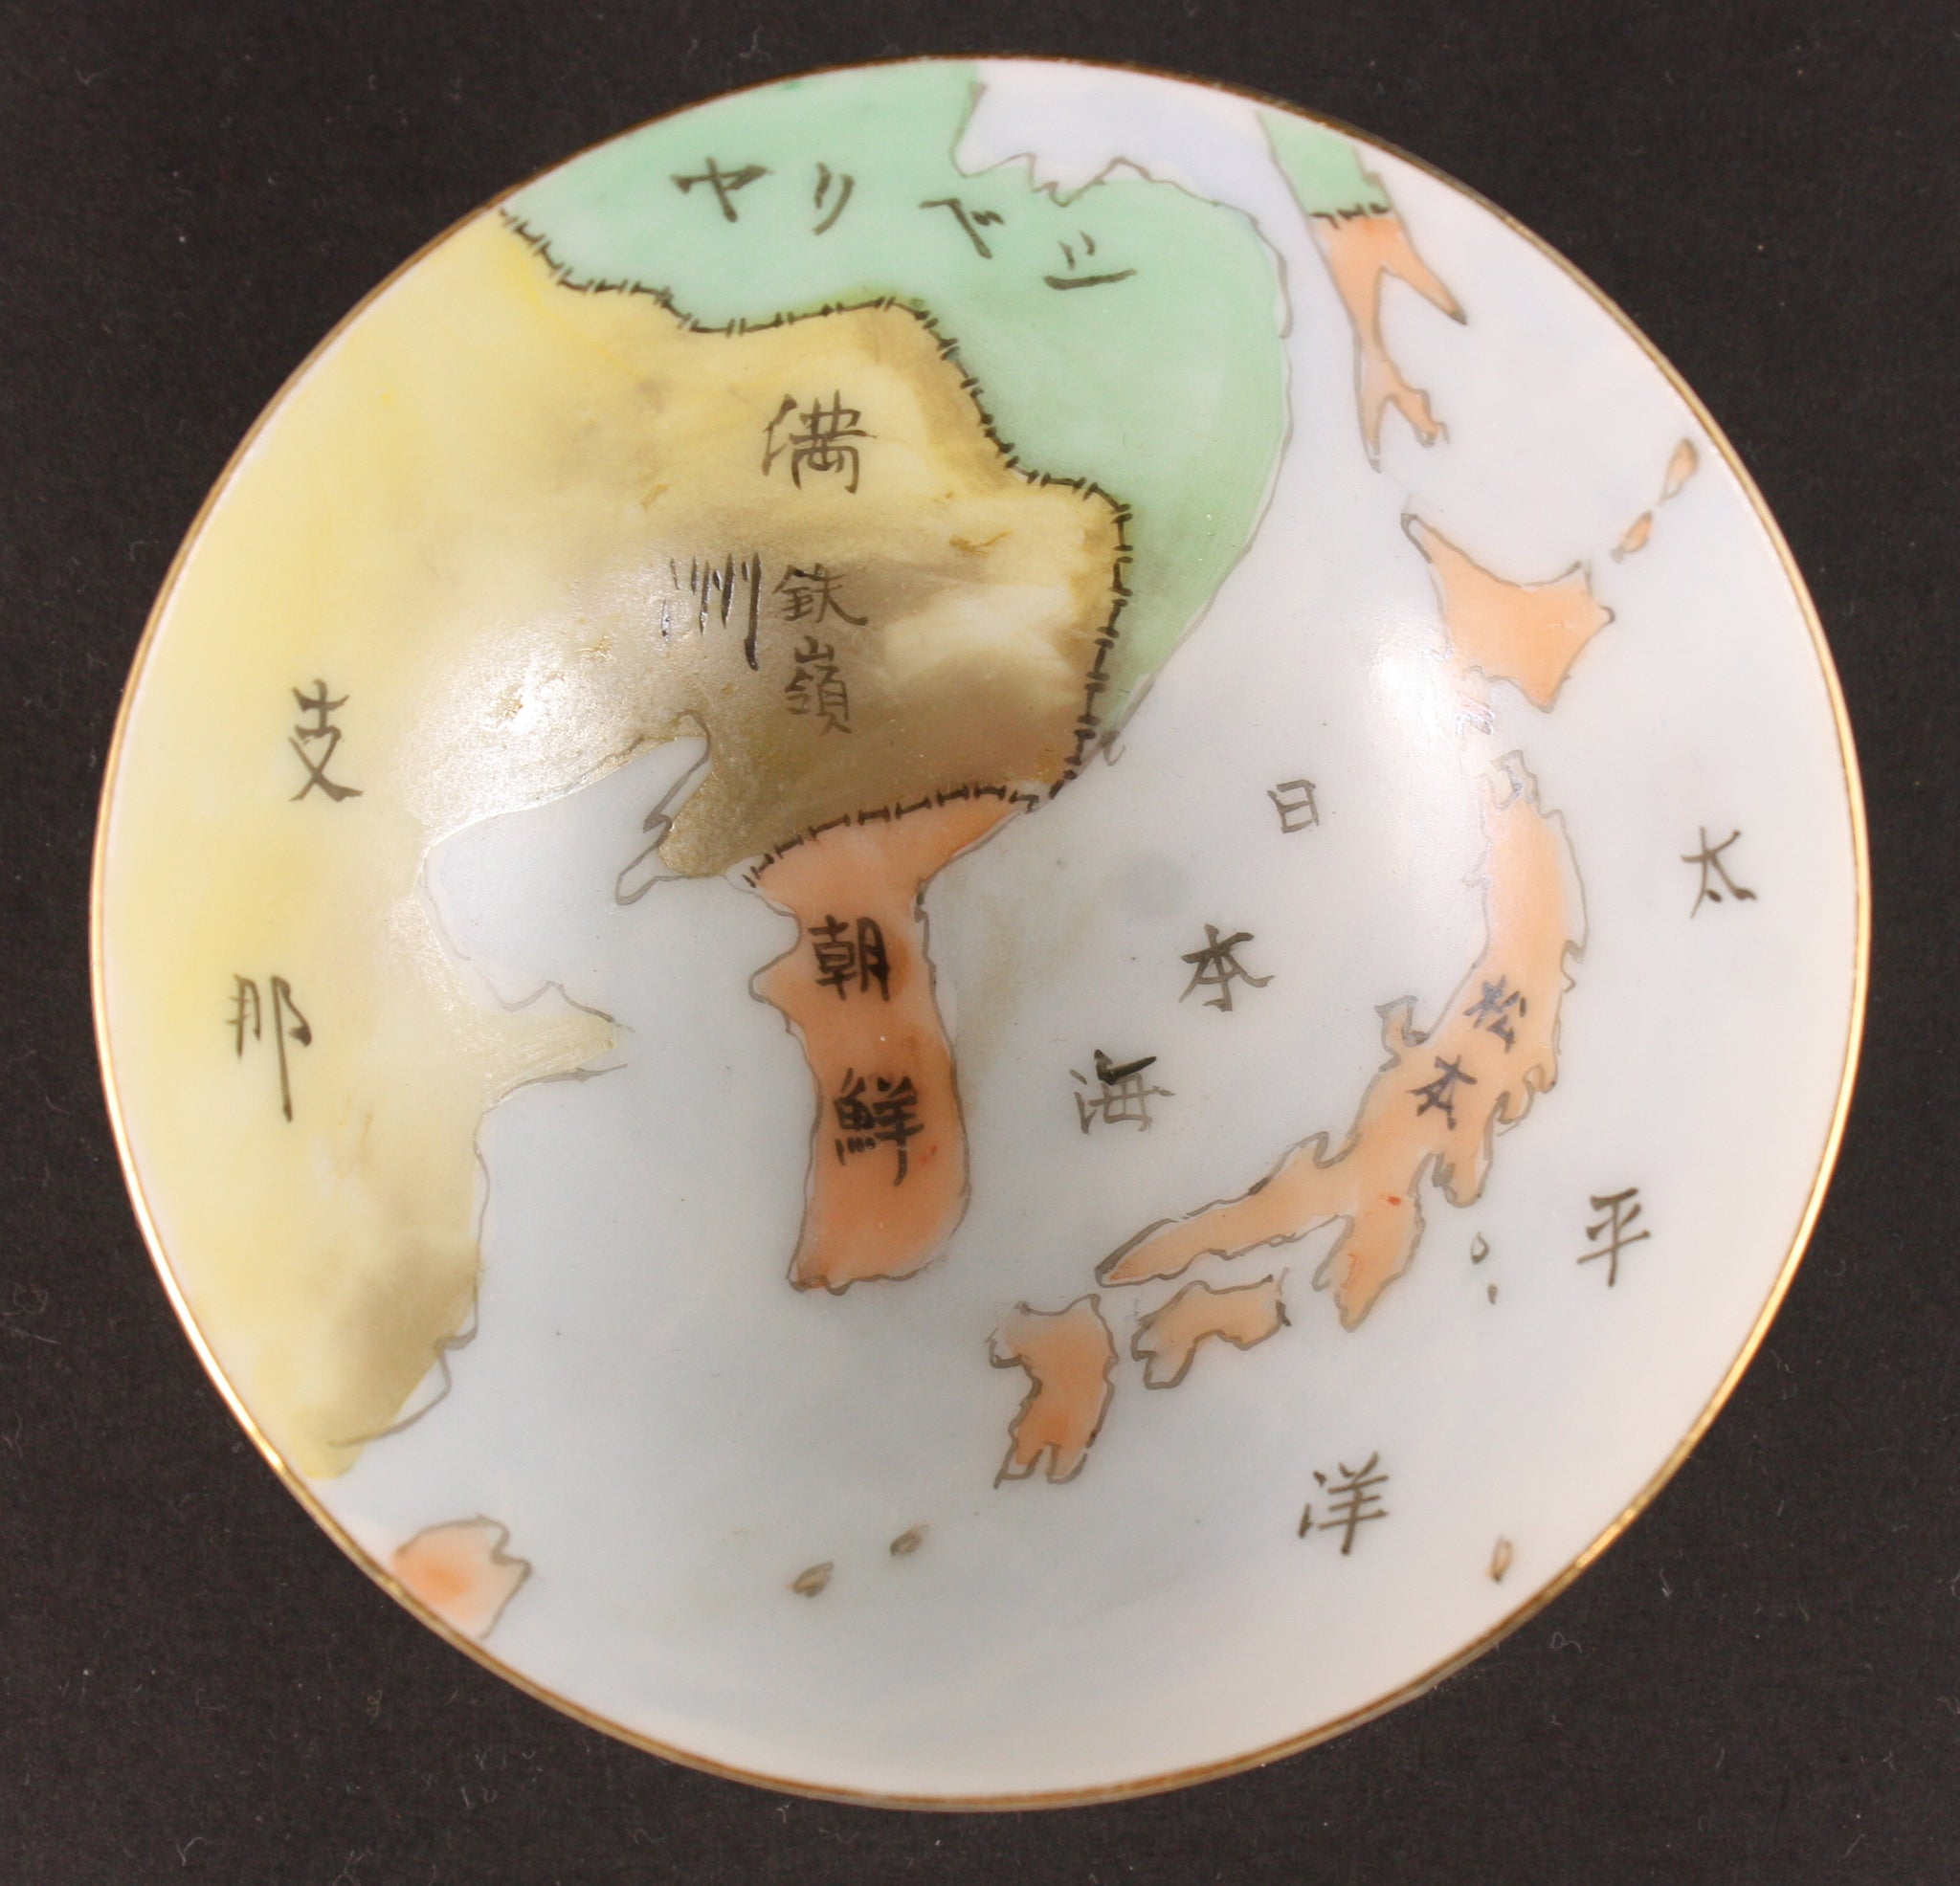 Rare Antique Japanese Military 1927 East Asian Map Army Sake Cup